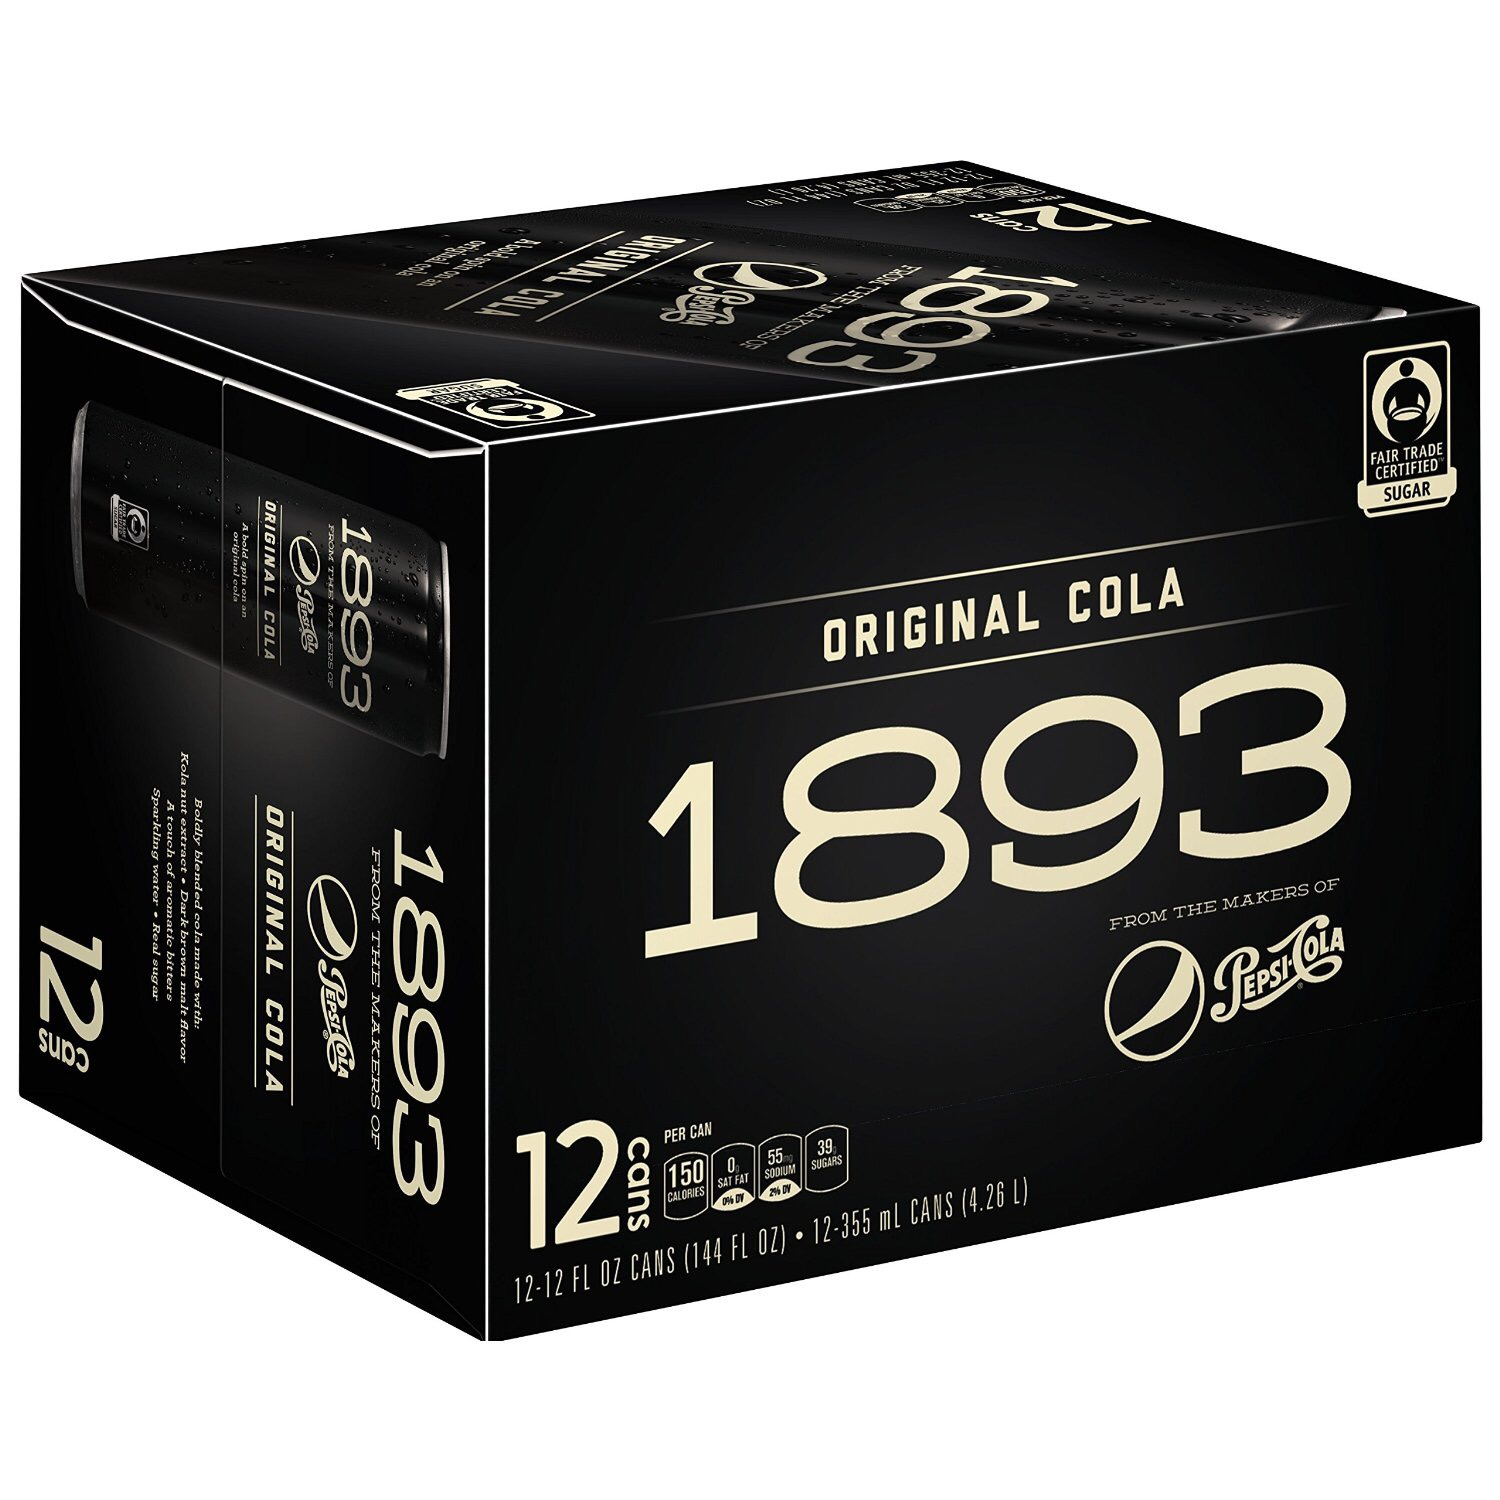 Pepsi Cola 1893 Original Cola 12 Pack Sale $13.50  Free Shipping from Amazon